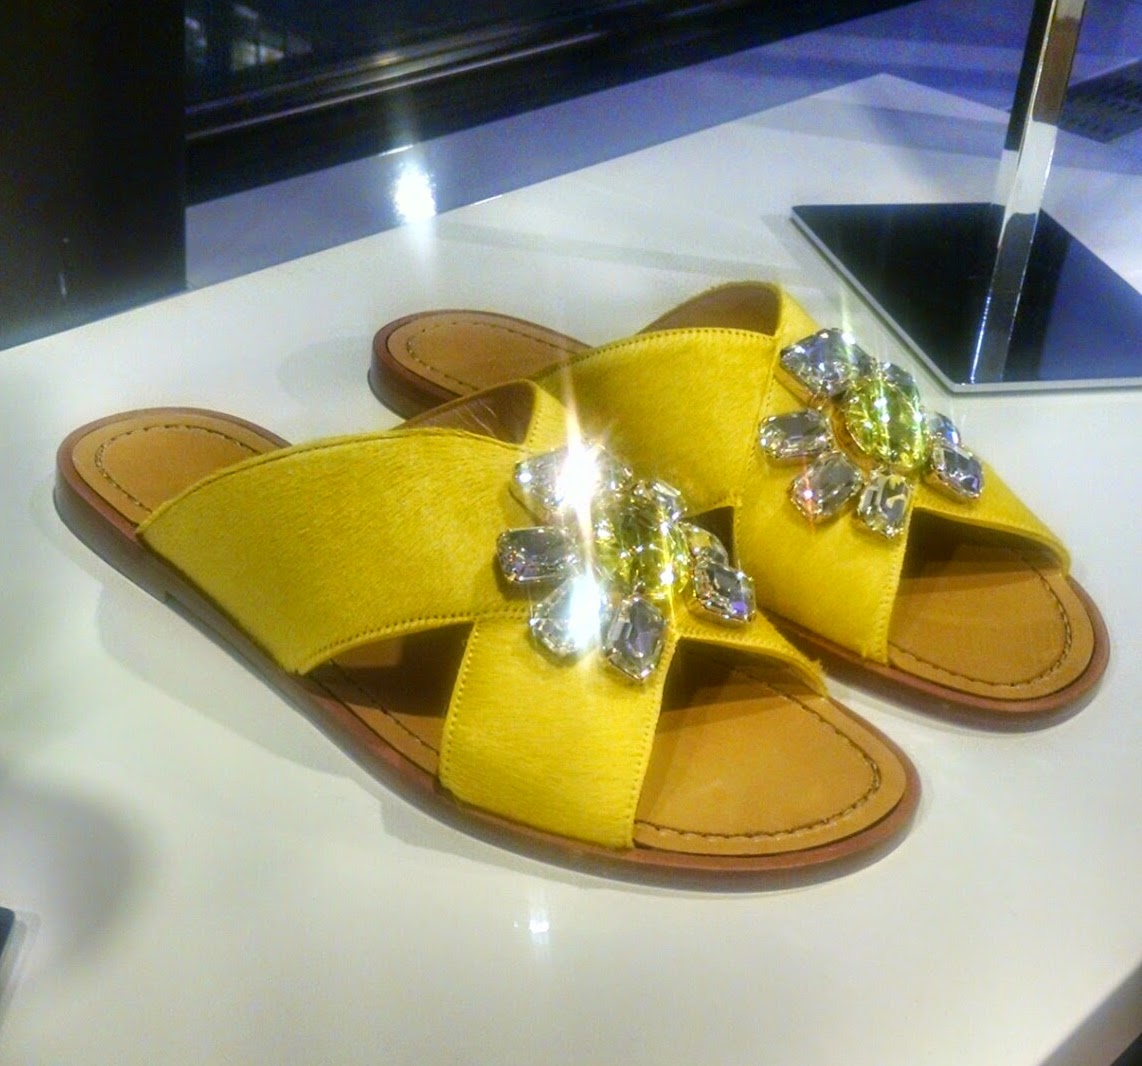 Furla Jeweled Slides